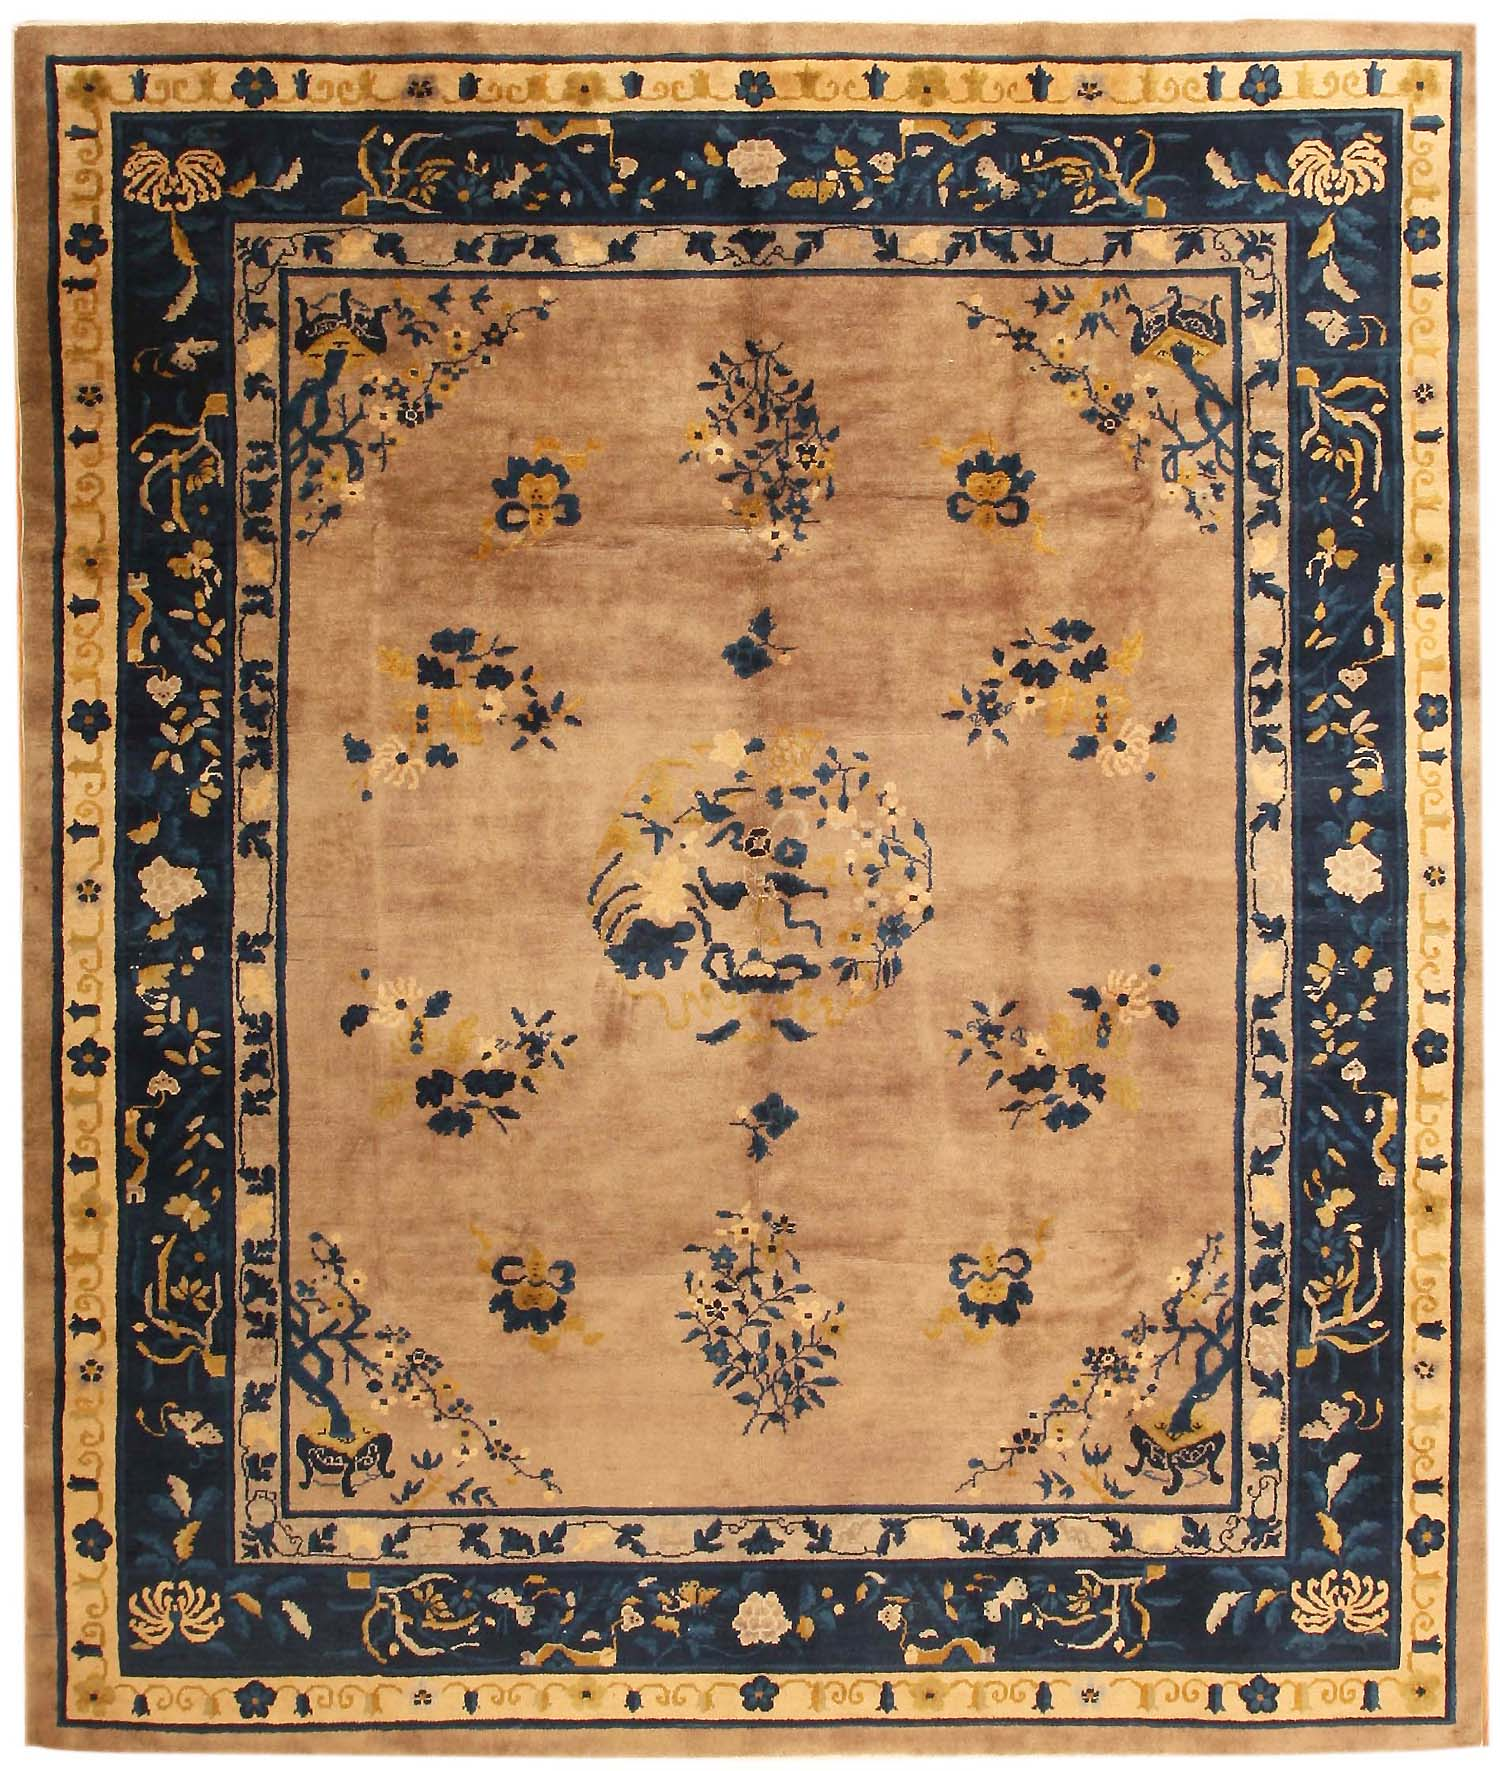 Chinese Rug Dealers: Antique Chinese Oriental Rugs 43732 For Sale